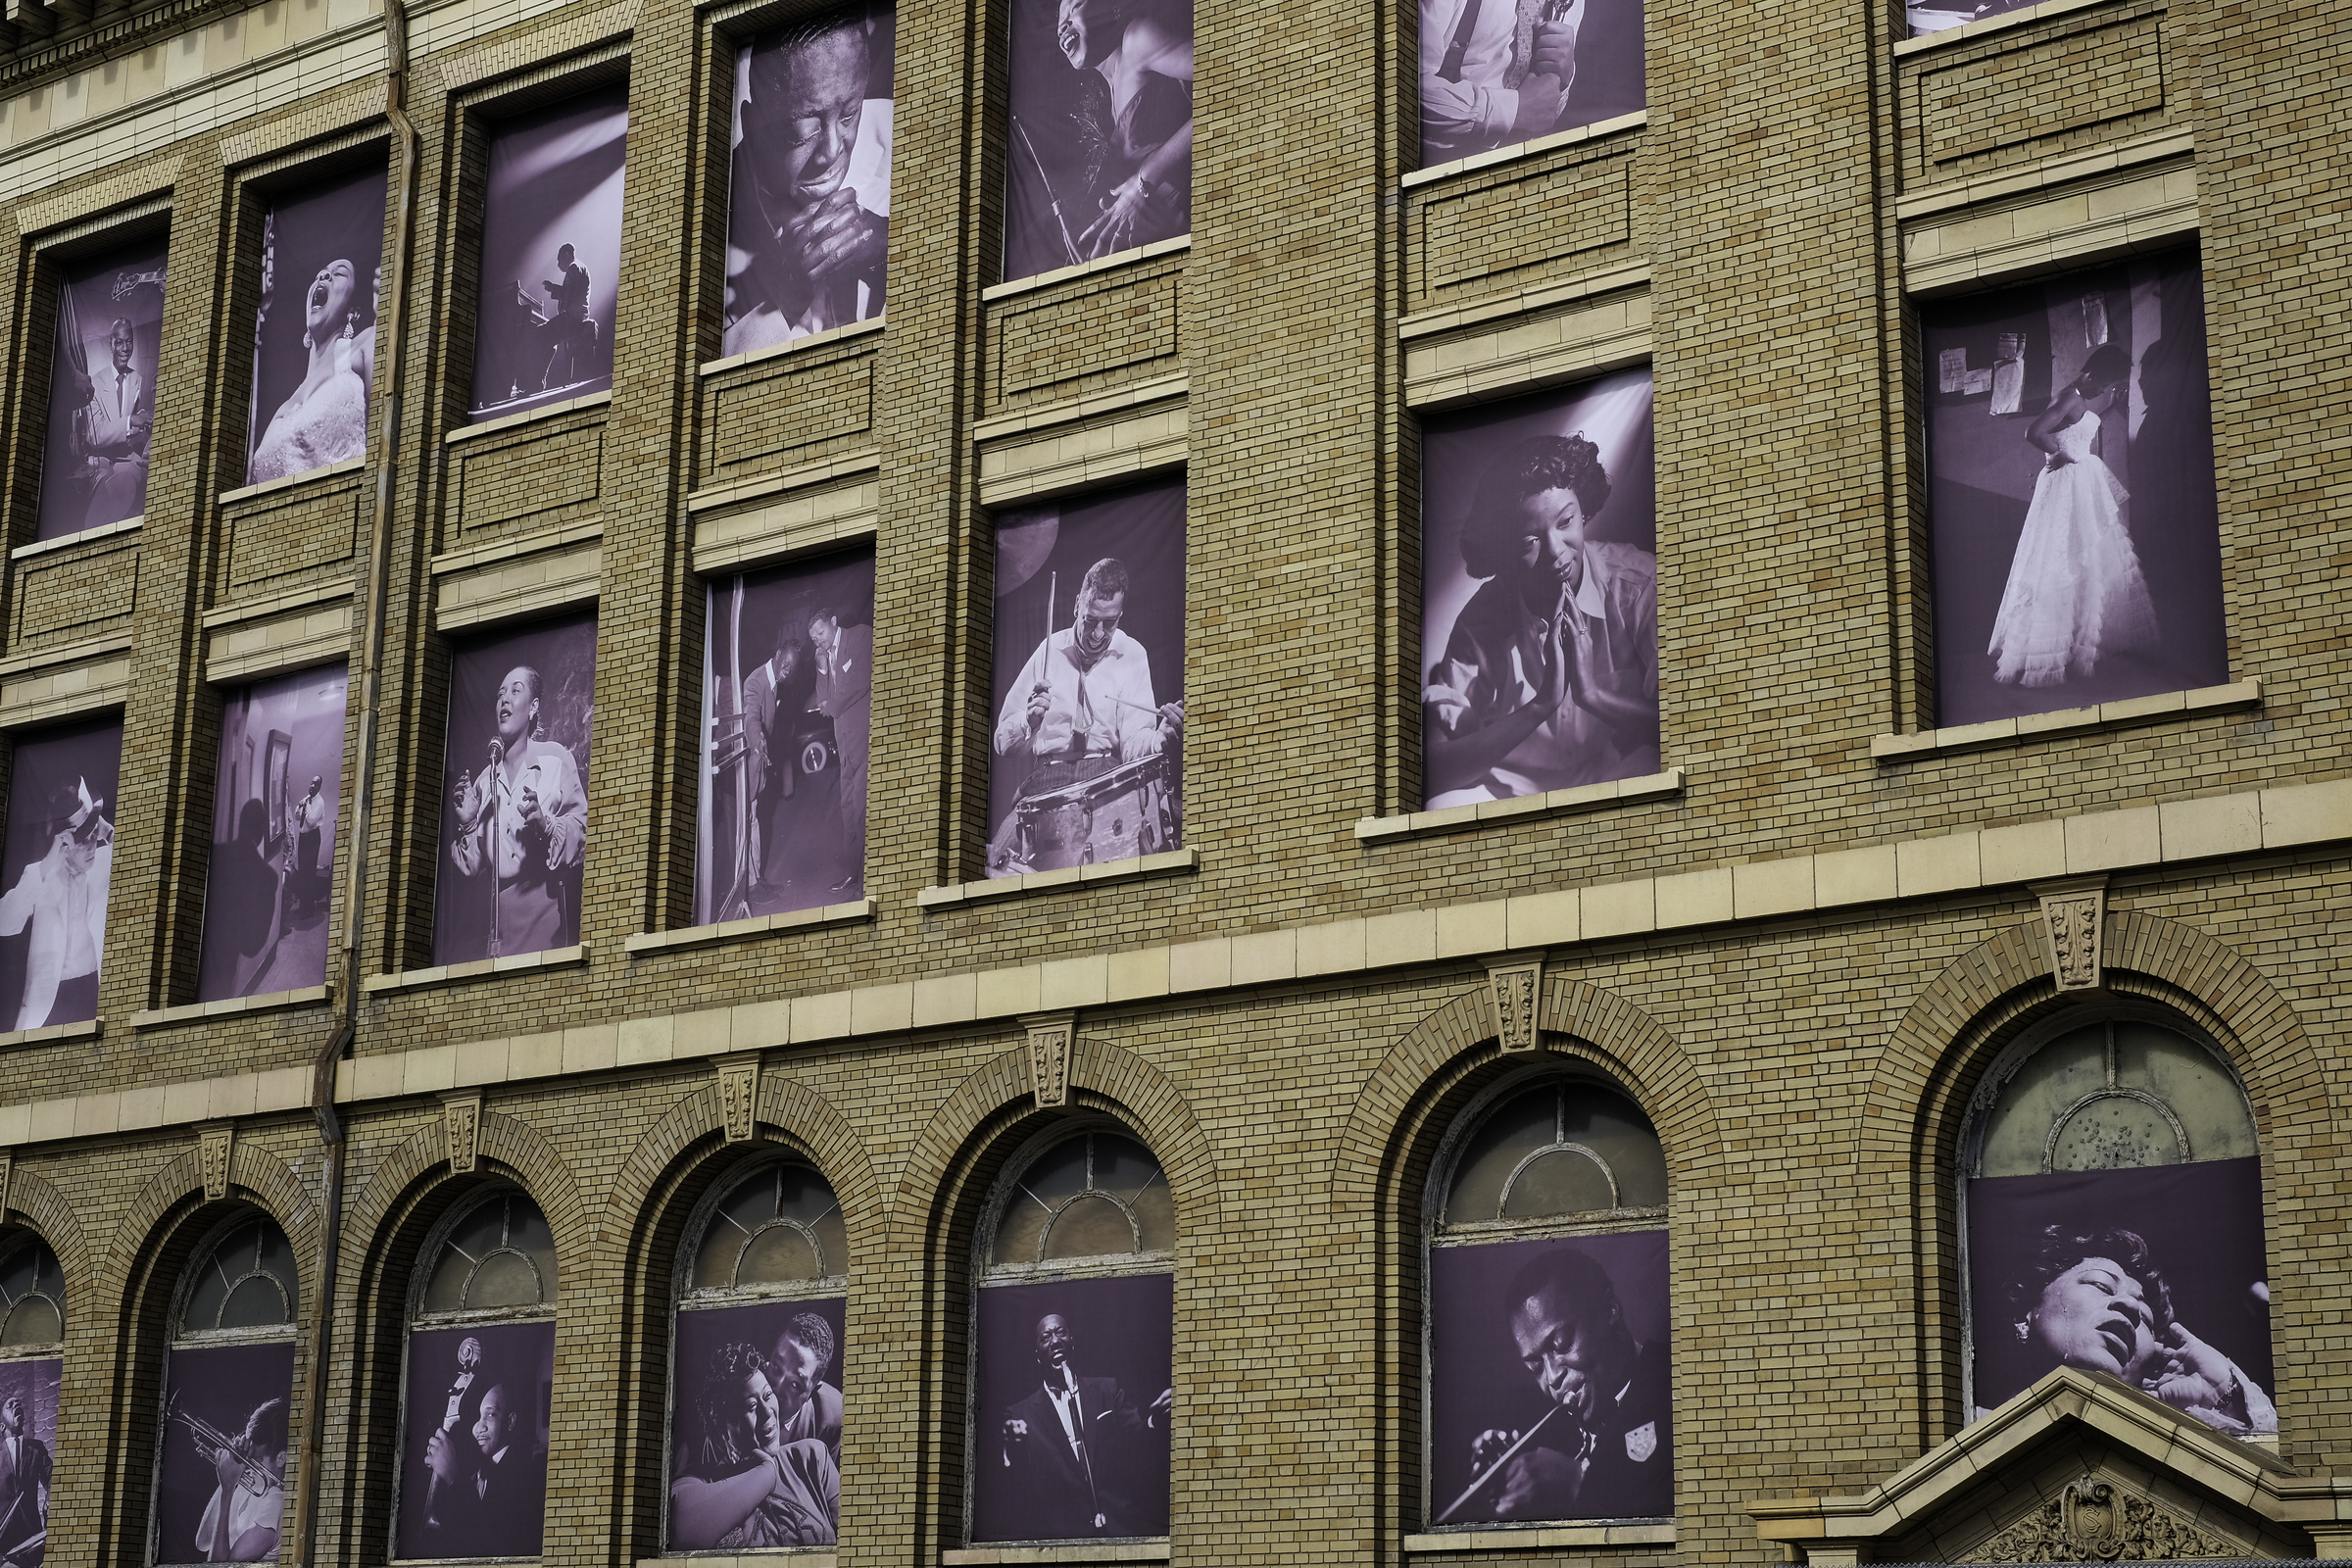 Photos of jazz icons in the windows of the former San Francisco Unified School District building across the street from the SFJAZZ Center